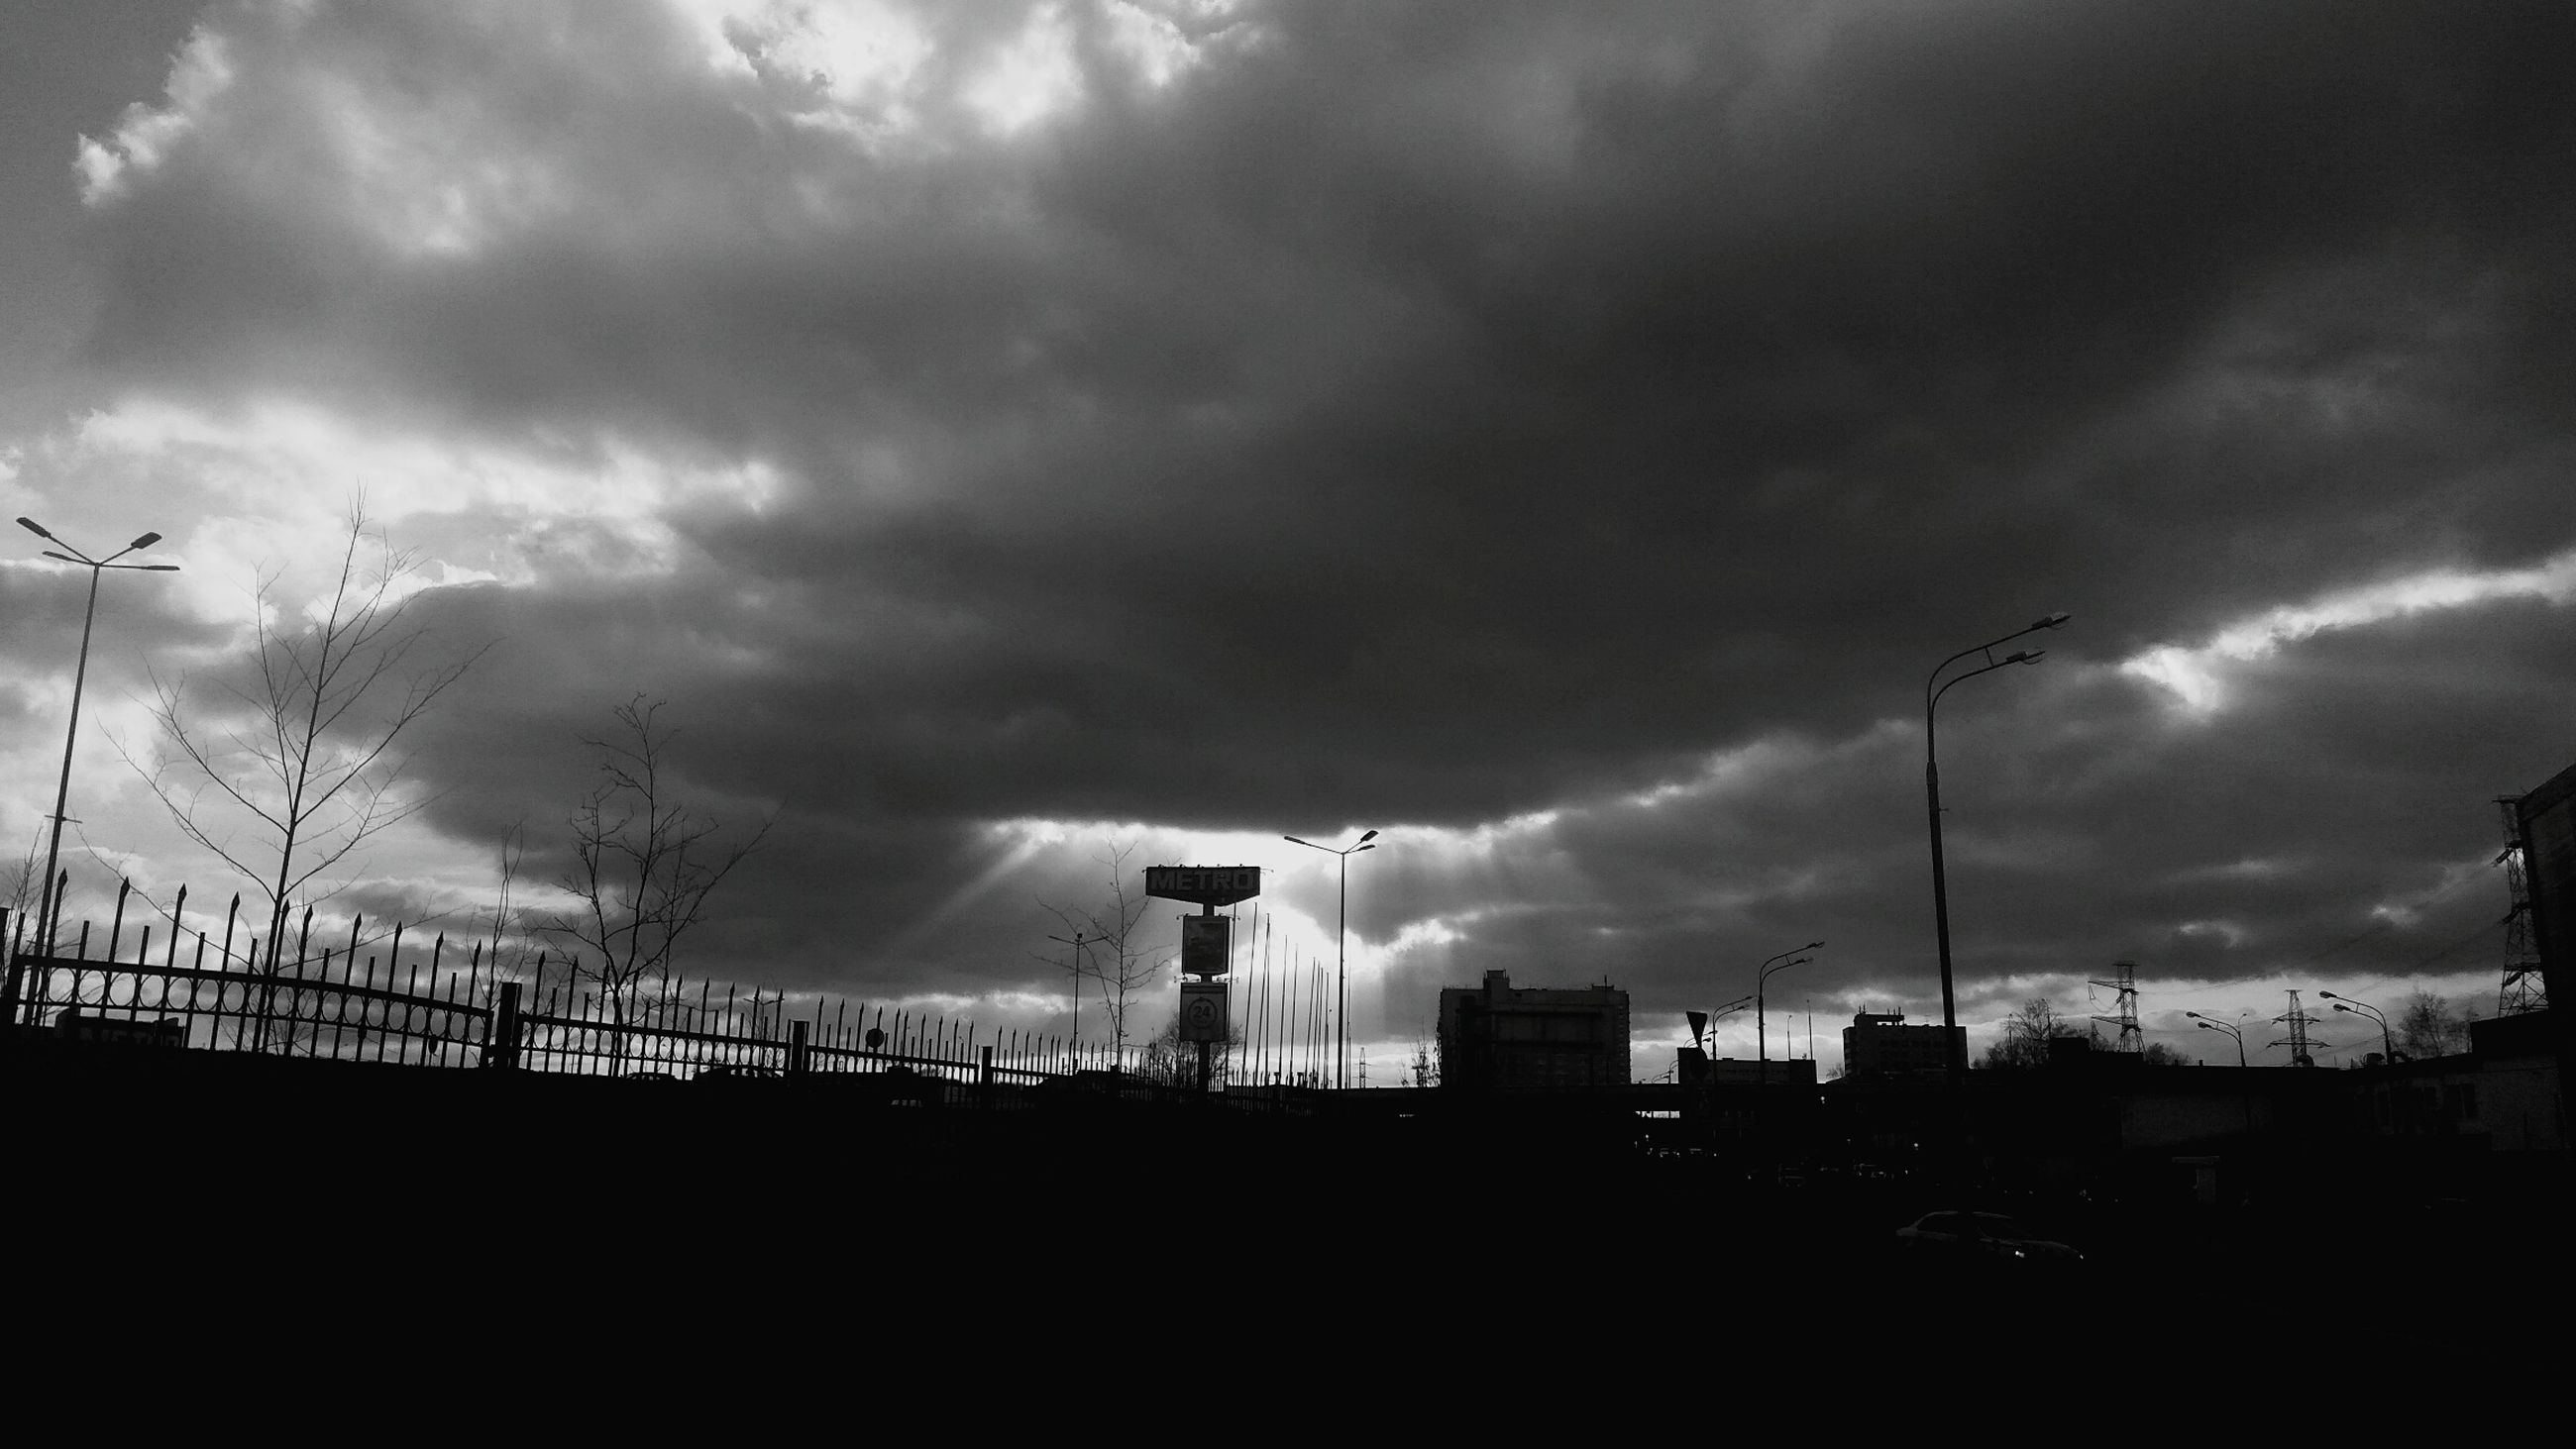 cloud - sky, sky, no people, city, outdoors, nature, storm cloud, tower, architecture, day